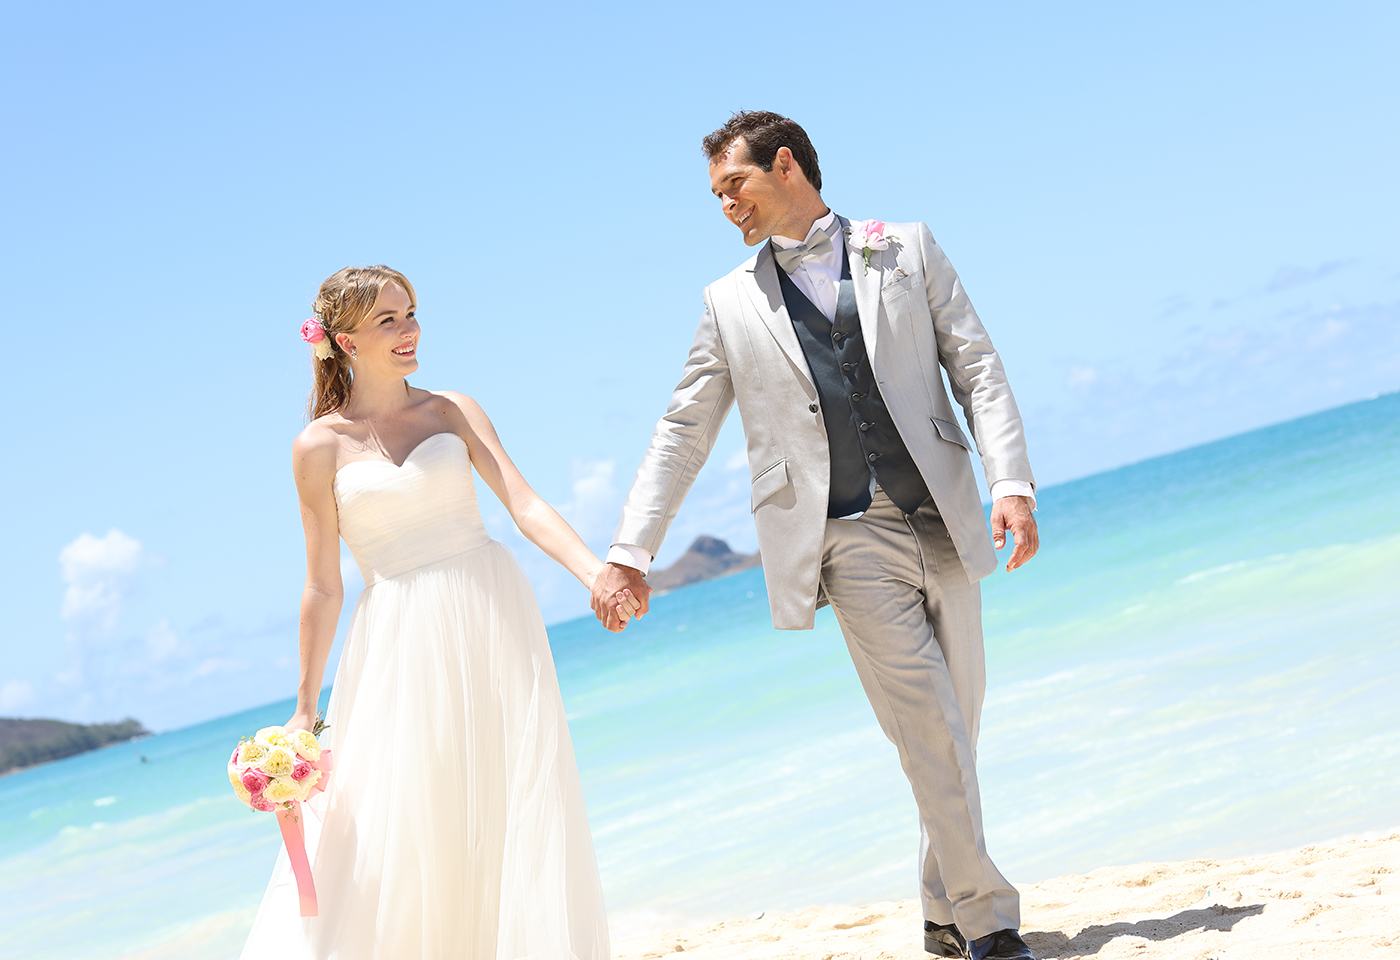 portrait  image of bride and groom holding hands on beach